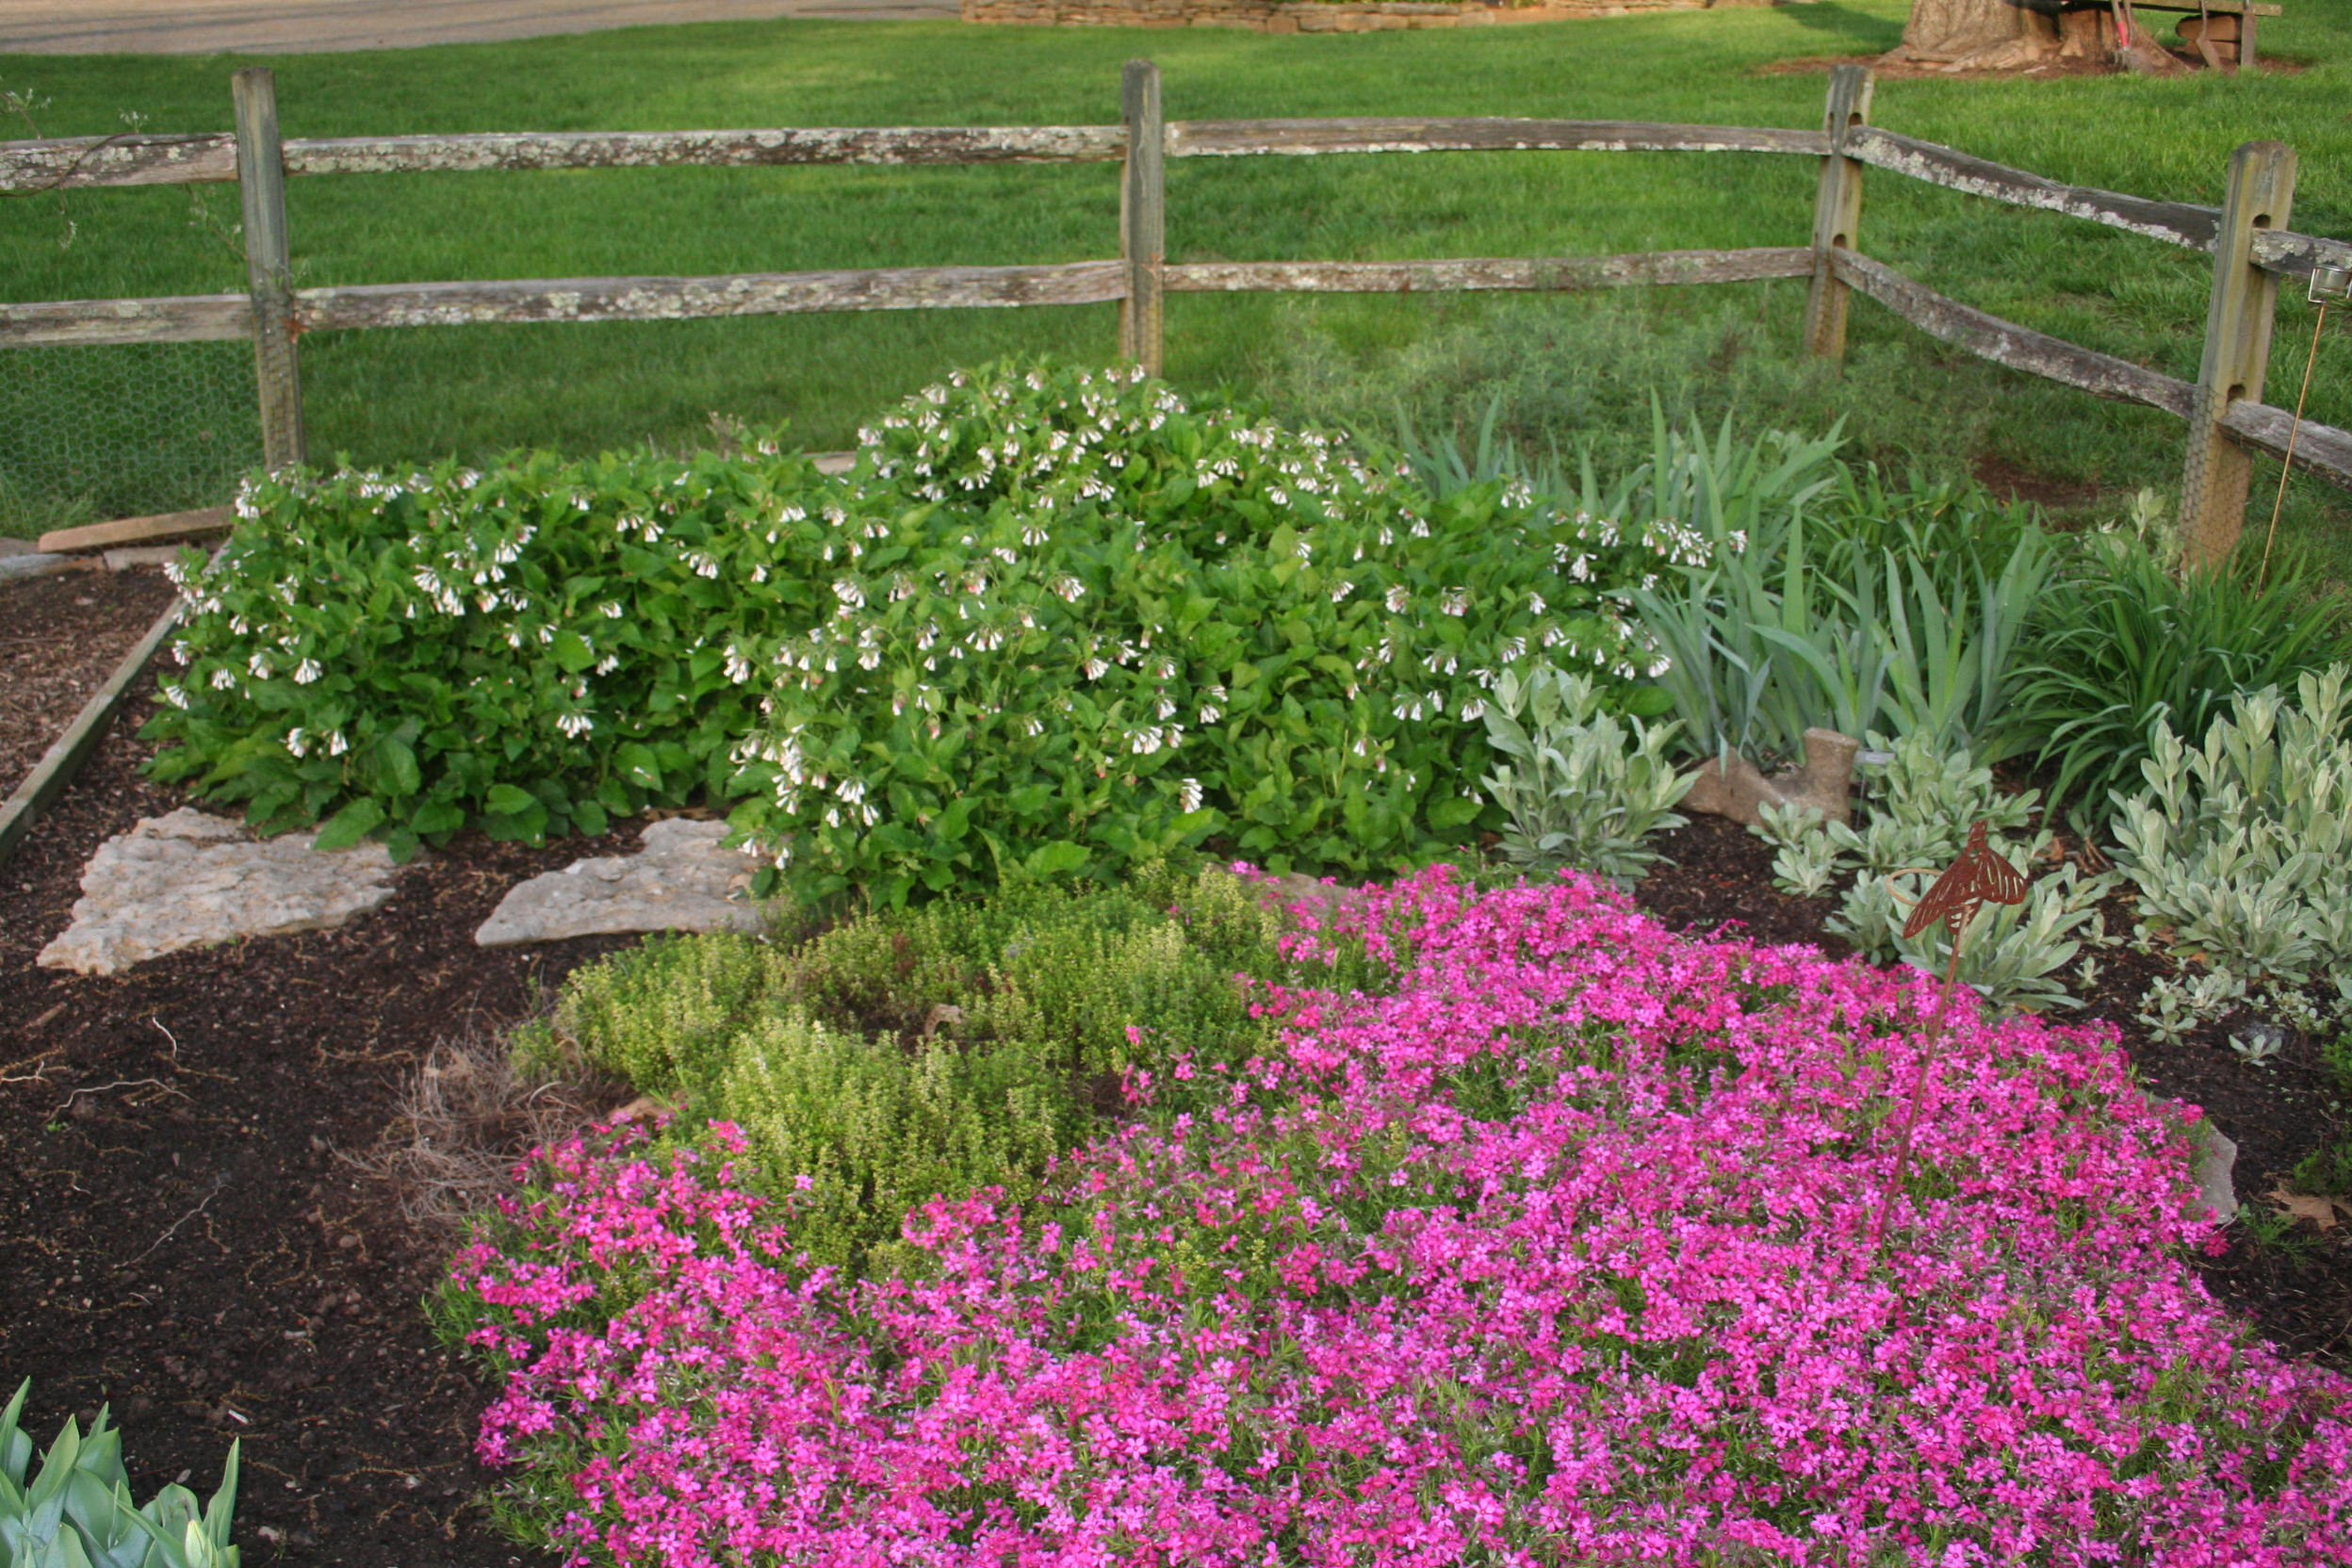 10 tips to building a raised flower bed - acer landscape services